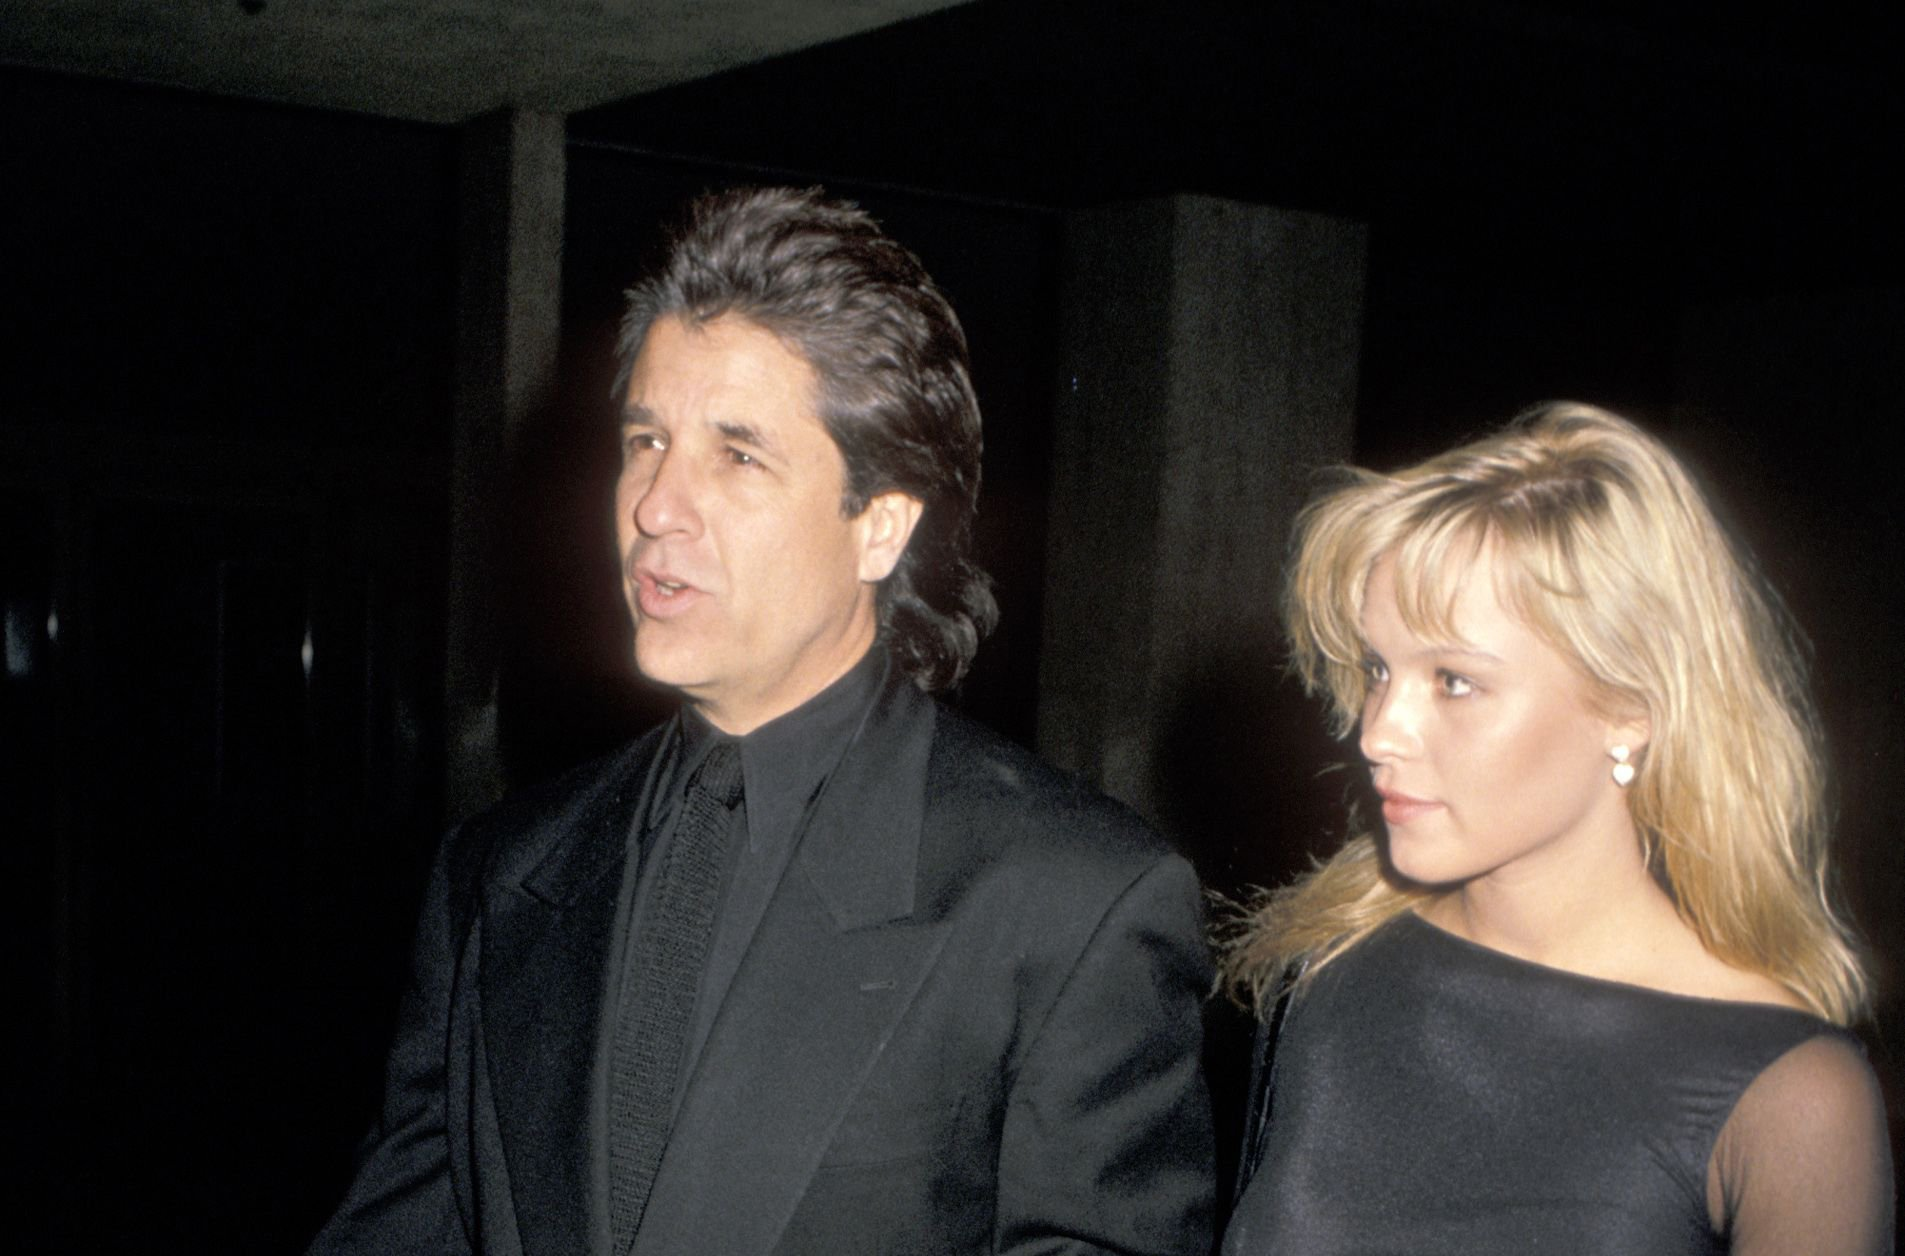 Jon Peters and Pamela Anderson attend the premiere of 'Glory' on December 11, 1989 / Getty Images